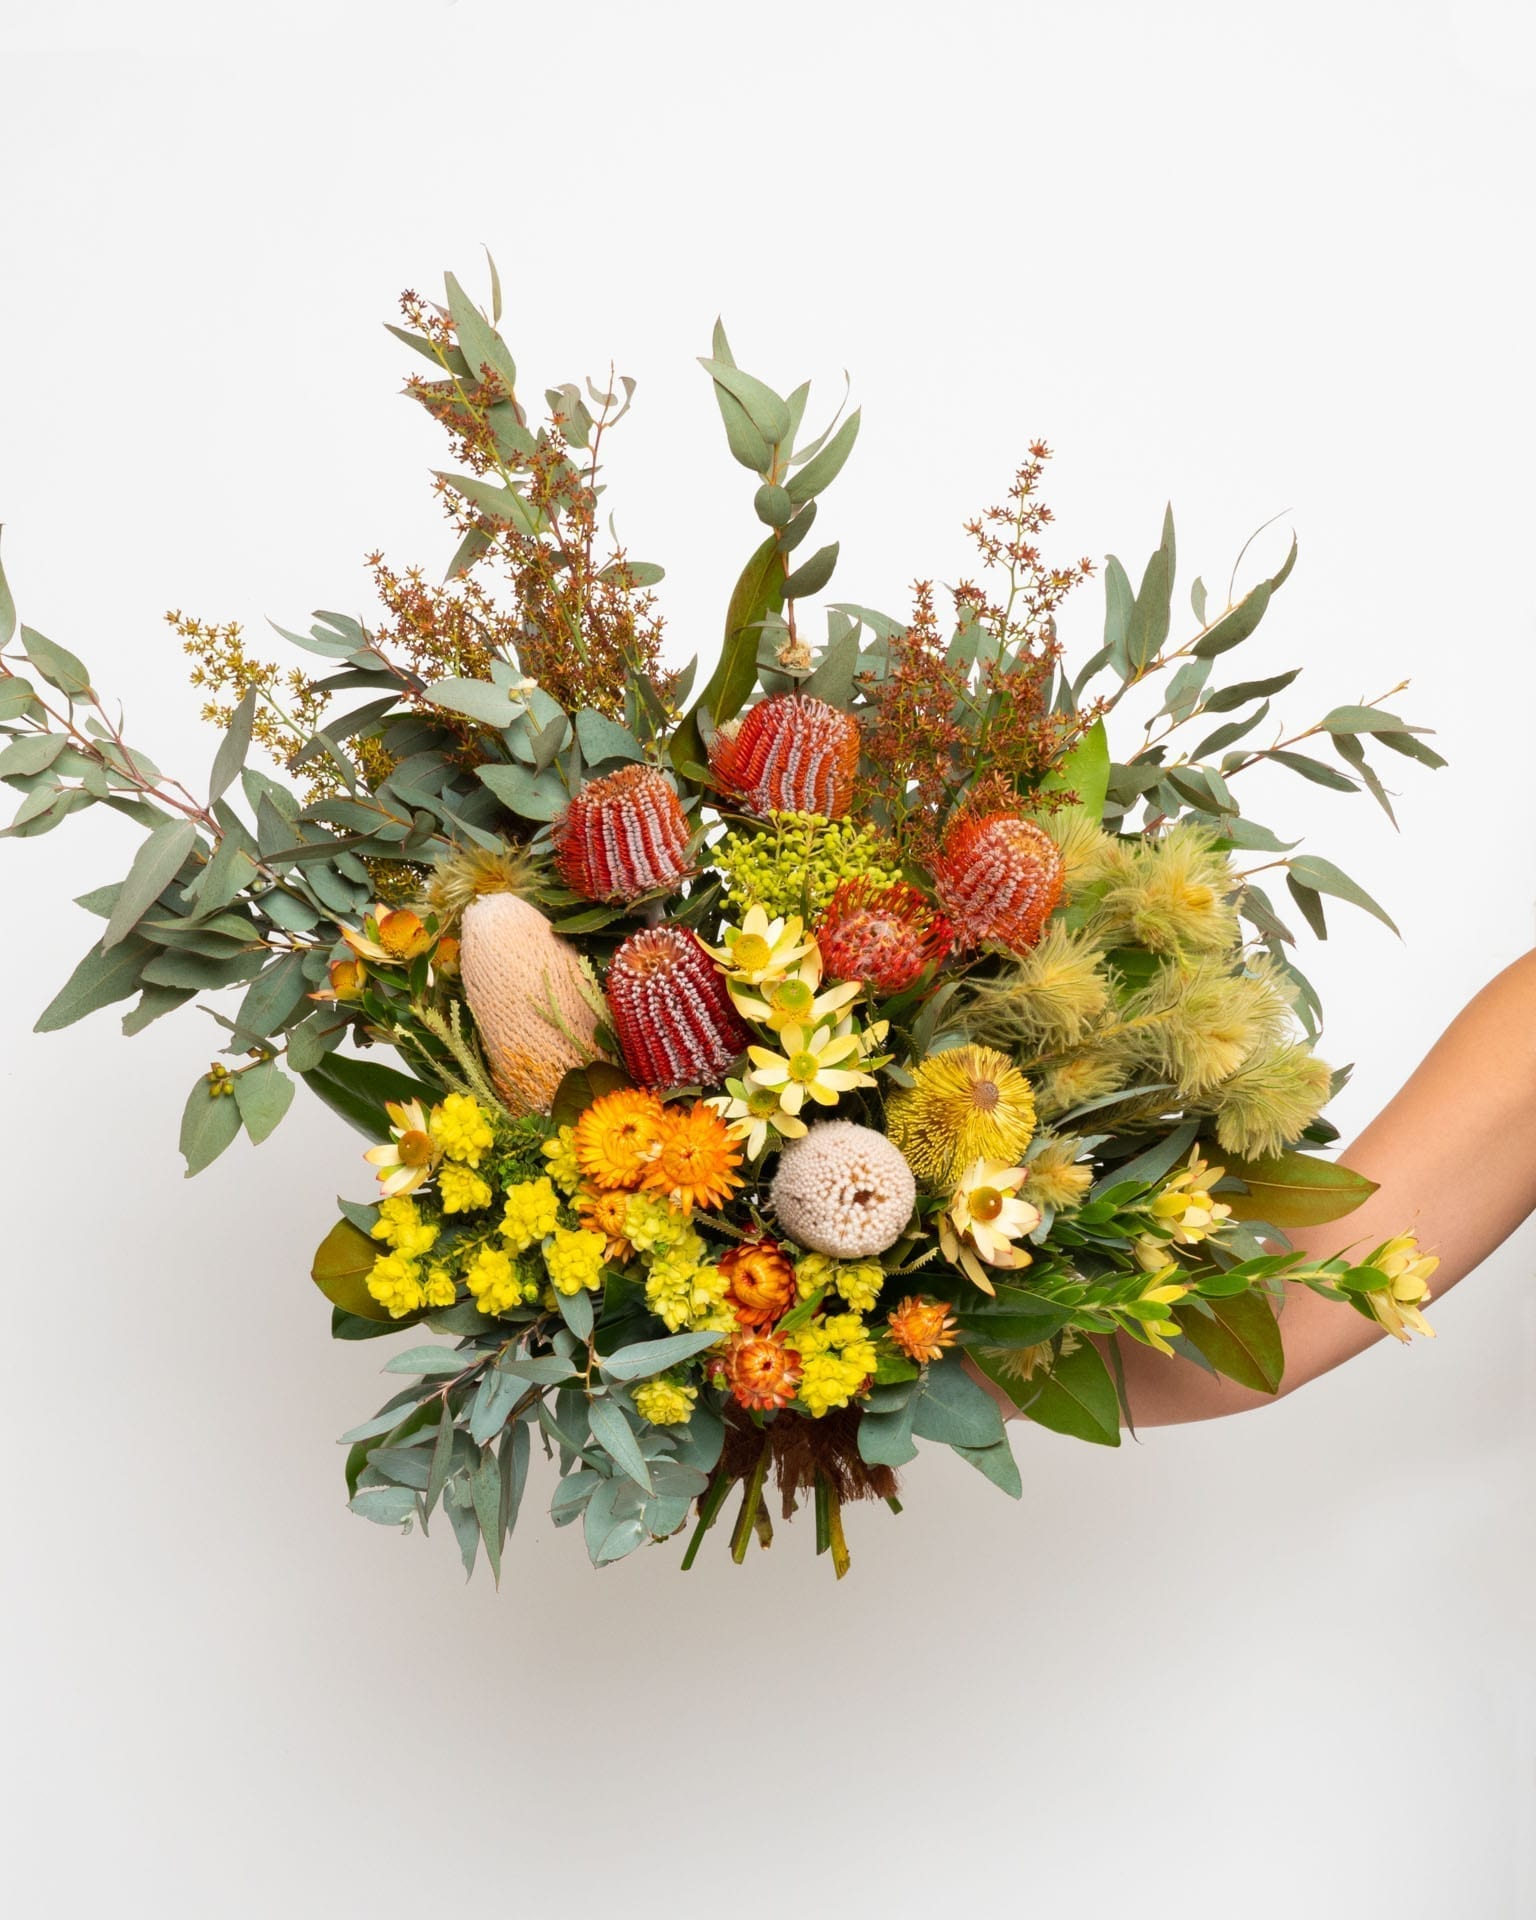 Australian Native And Wildflower Bouquet Art Stems On Lygon